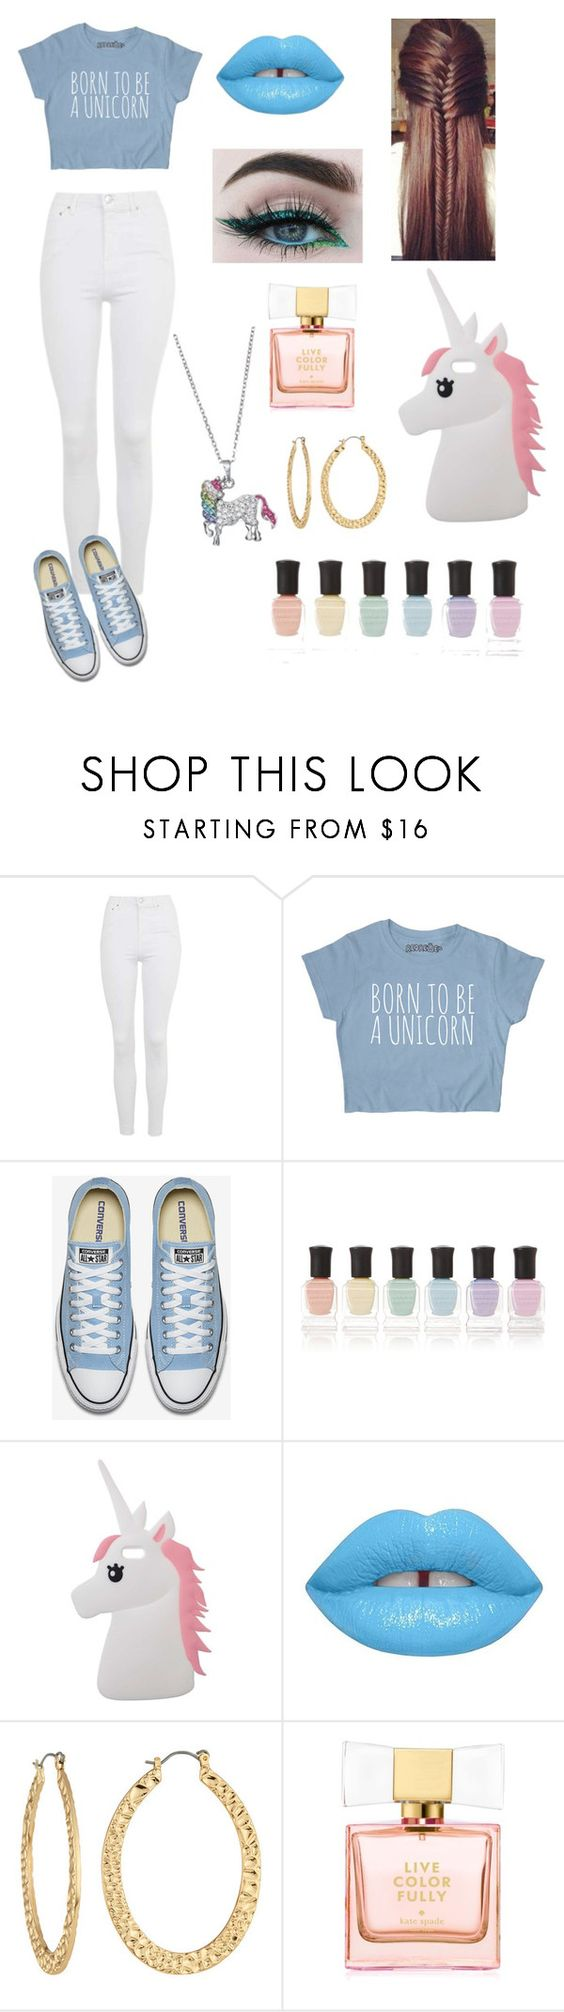 """UNICORNS RULE! 😄"" by angelinemelanie747 ❤ liked on Polyvore featuring Topshop, Deborah Lippmann, Miss Selfridge, Lime Crime, Fragments and Kate Spade"